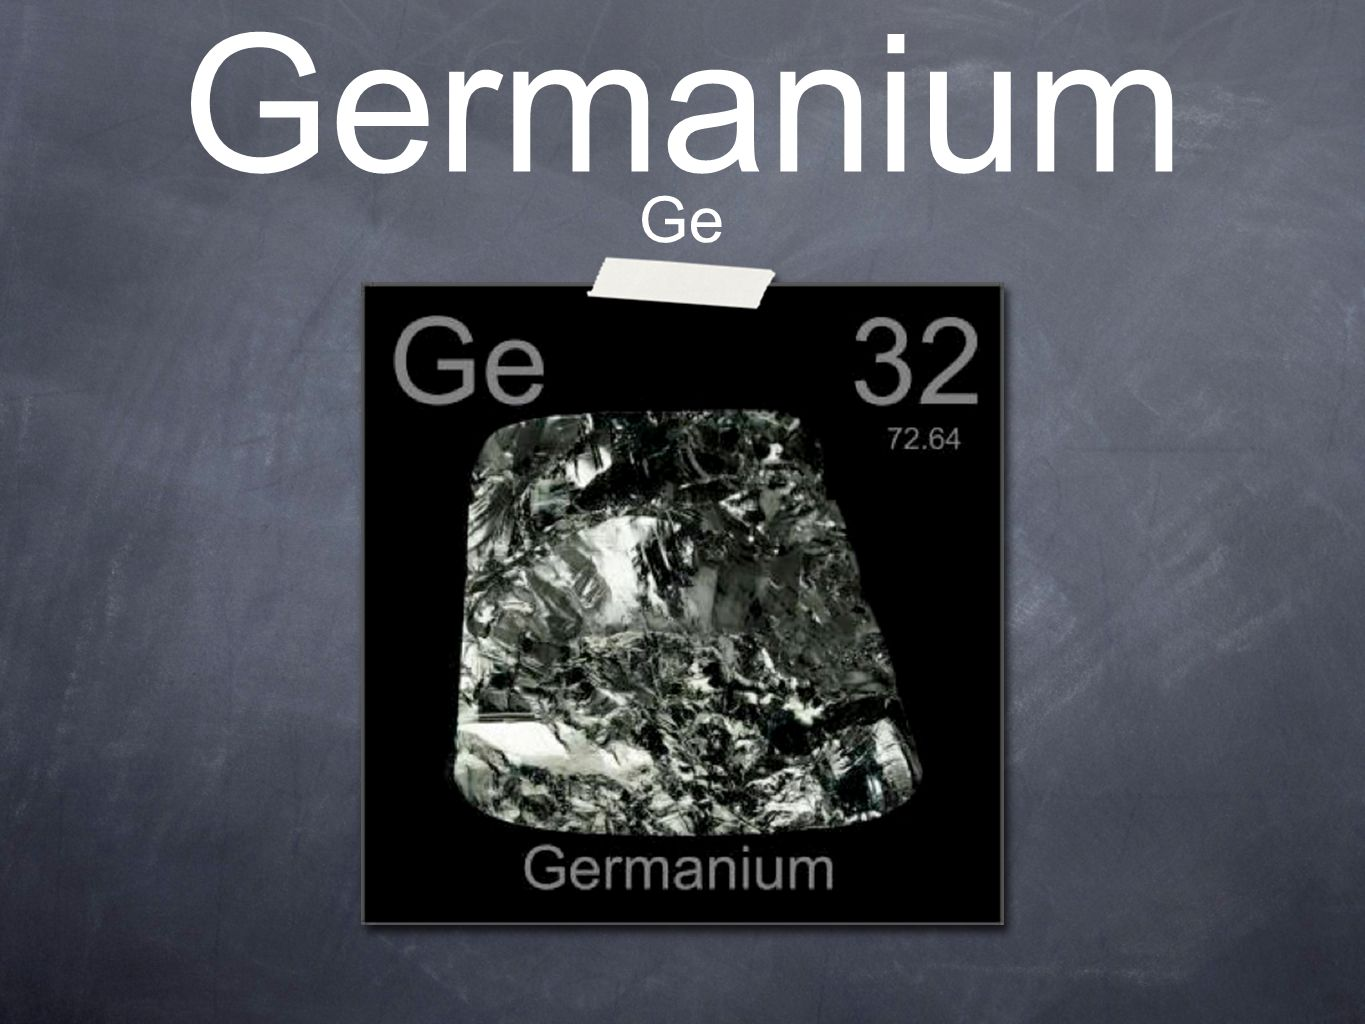 Germanium ge periodic table location on the periodic table 1 germanium ge gamestrikefo Image collections